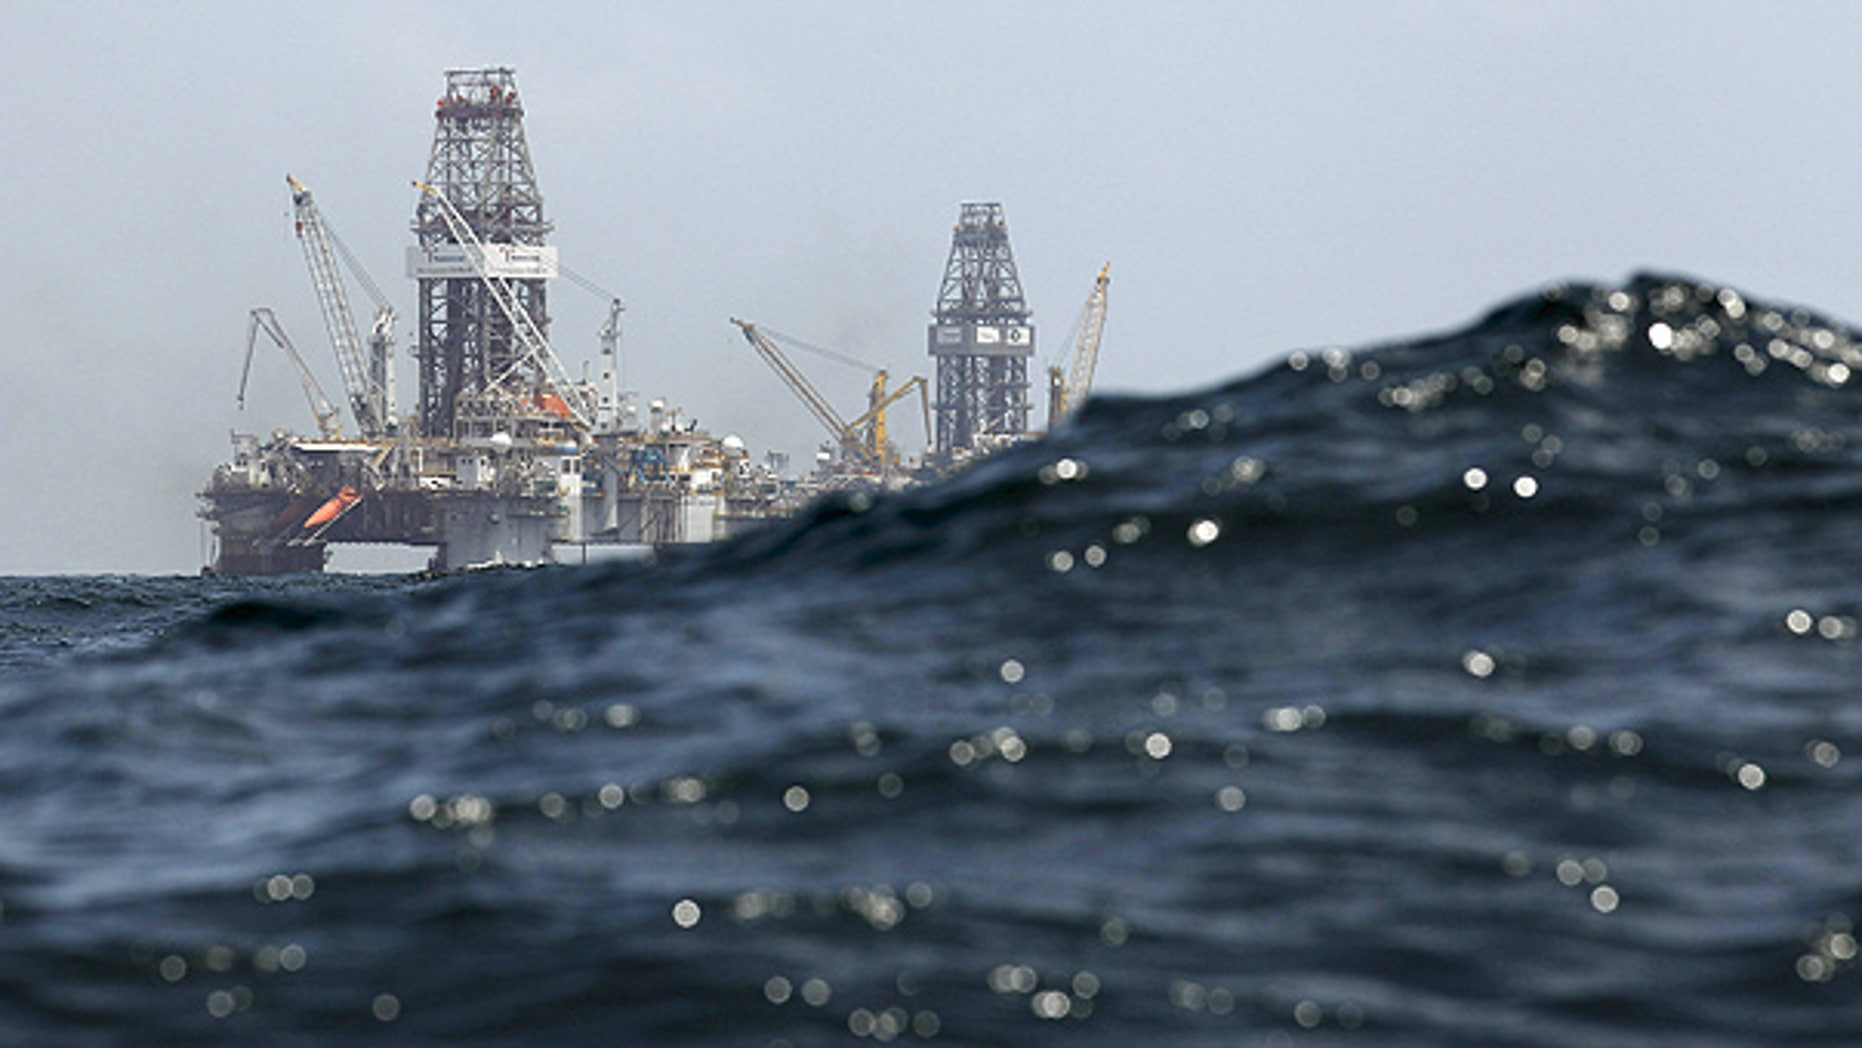 July 22: Waves partially obscure rigs drilling the relief wells at the Deepwater Horizon oil spill site in the Gulf of Mexico.